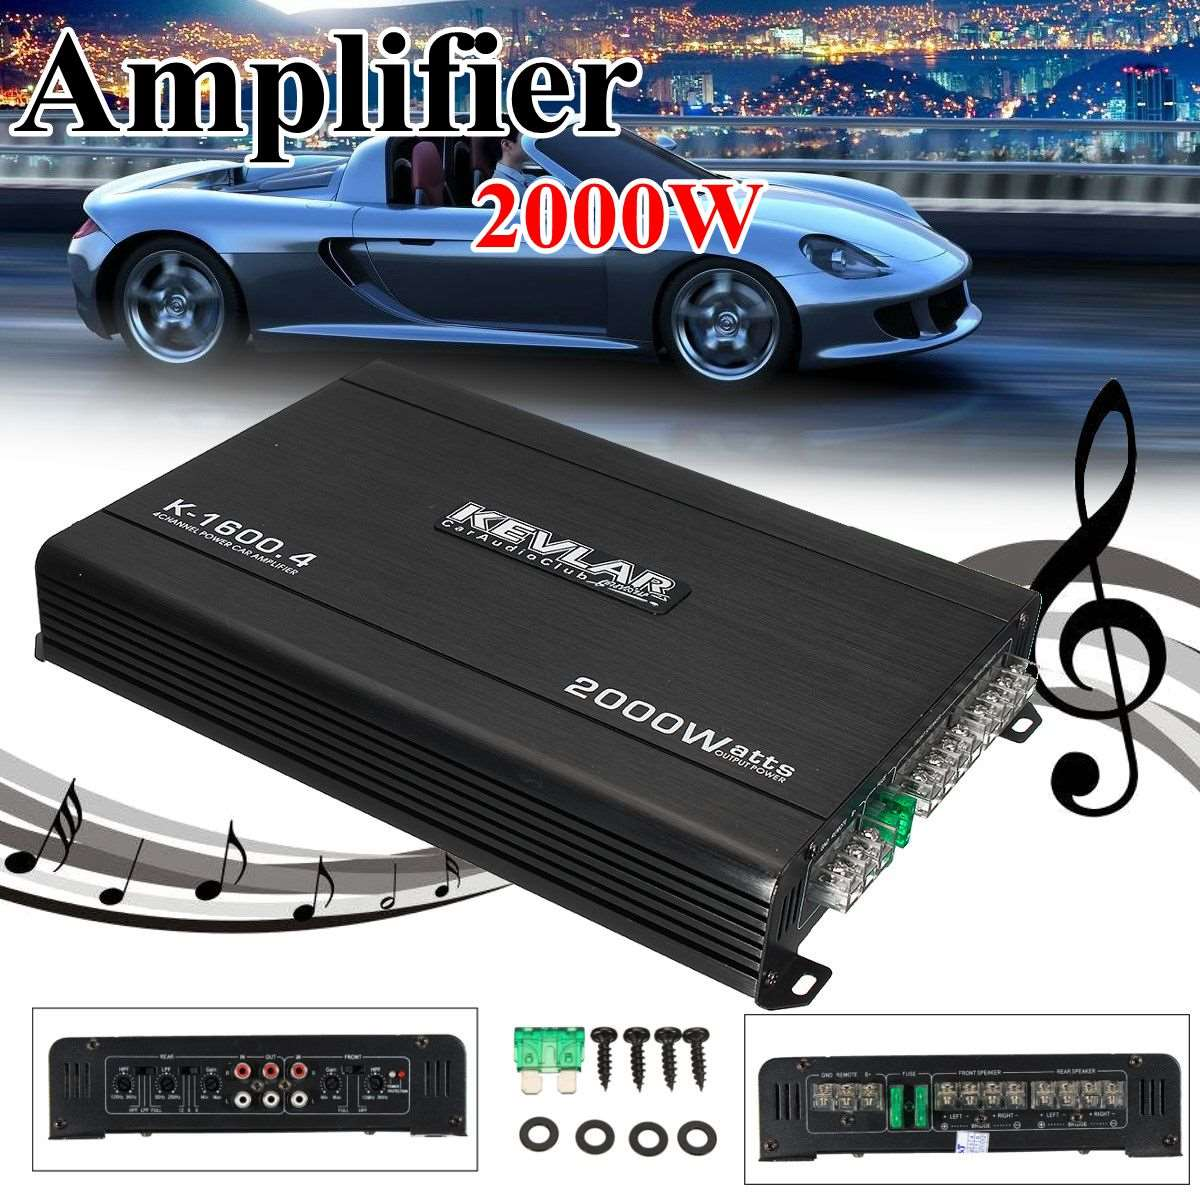 4 Channel Car Amplifier Audio 2000w 12dB High Power Car Amplifiers High Power lab gruppen fp20000q best quality audio power amplifiers